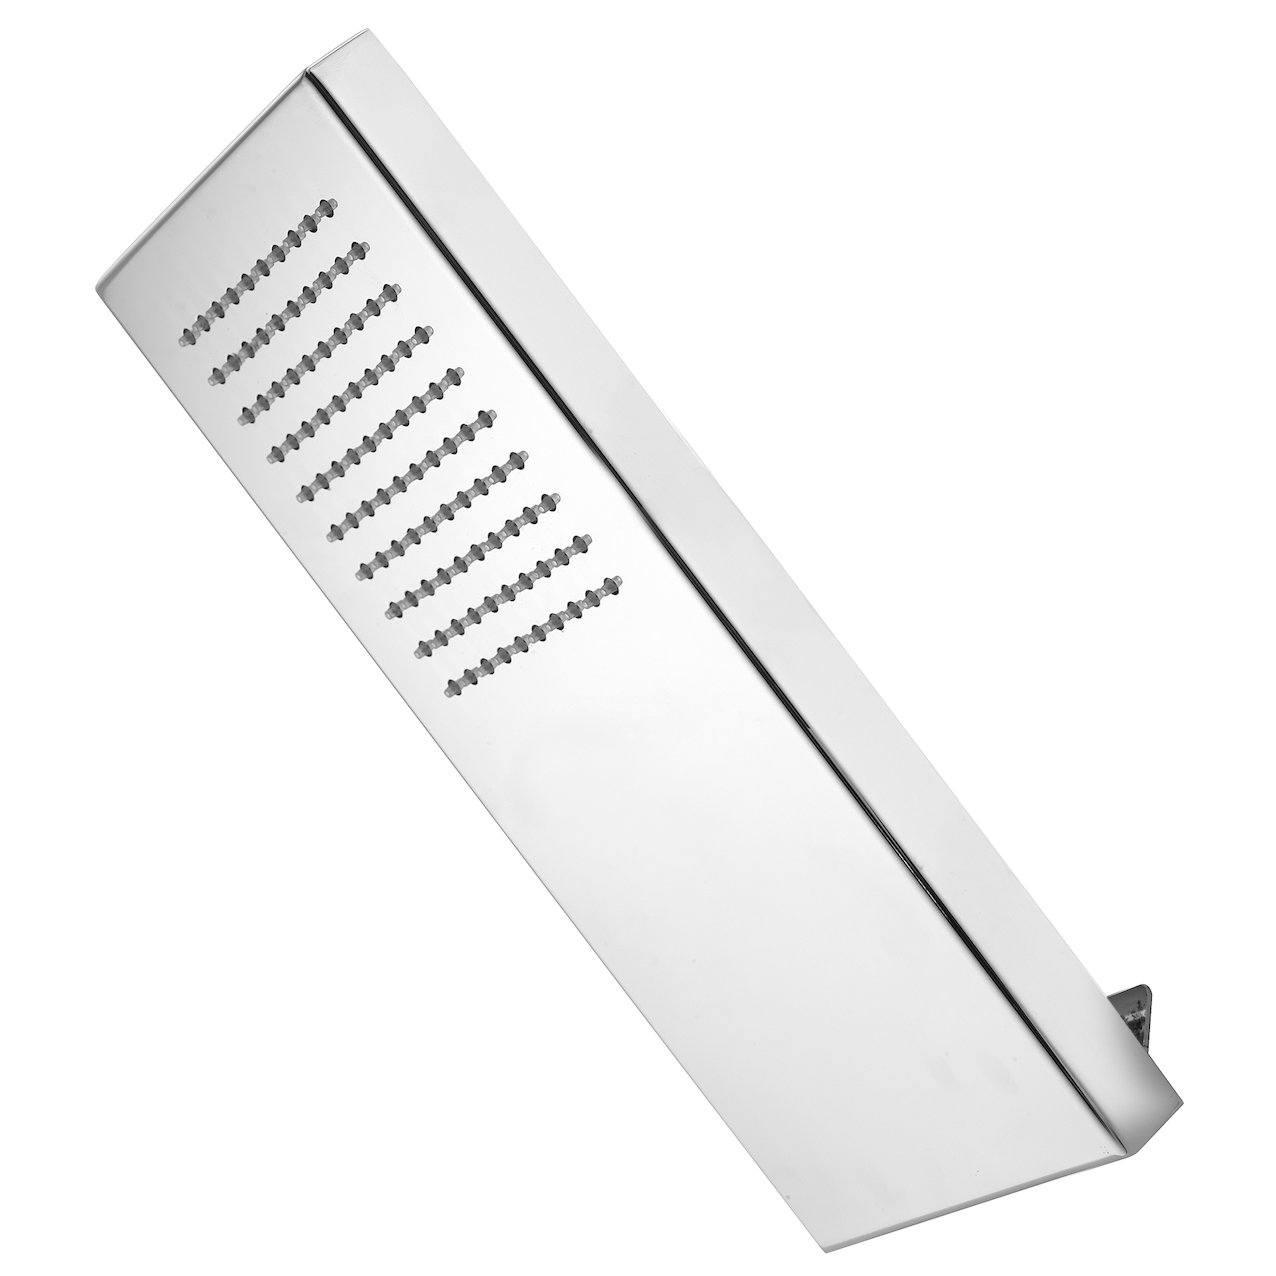 Wall inclined shower head with rain jet